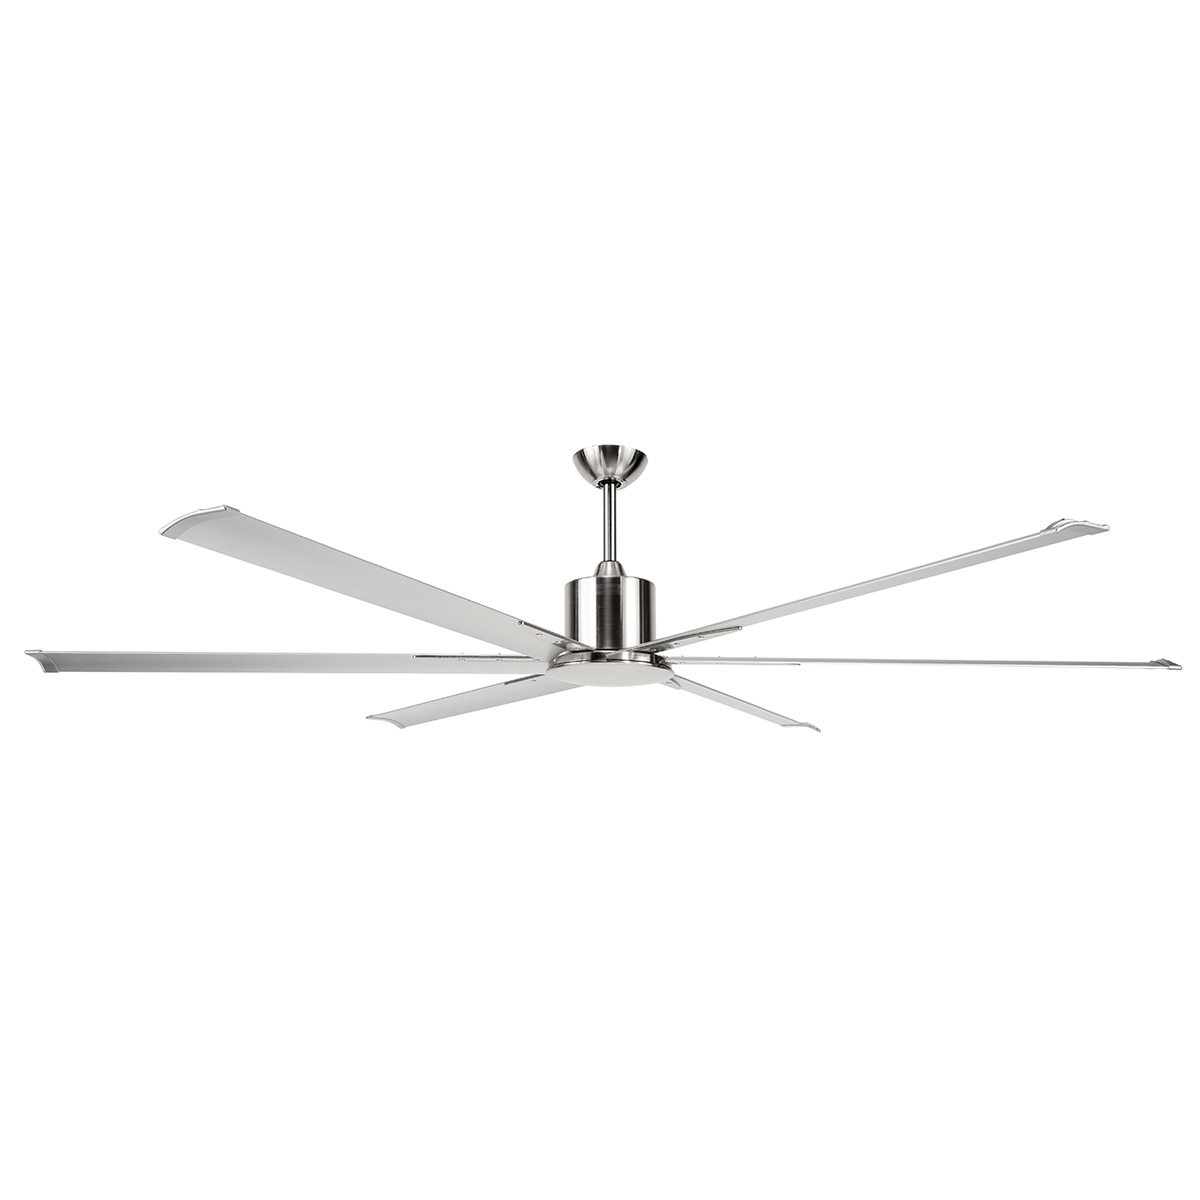 Trendy Maelstrom Ceiling Fan: Dc Motor 84″ With Remote (satin Nickel Pertaining To Outdoor Ceiling Fans With Dc Motors (View 7 of 20)